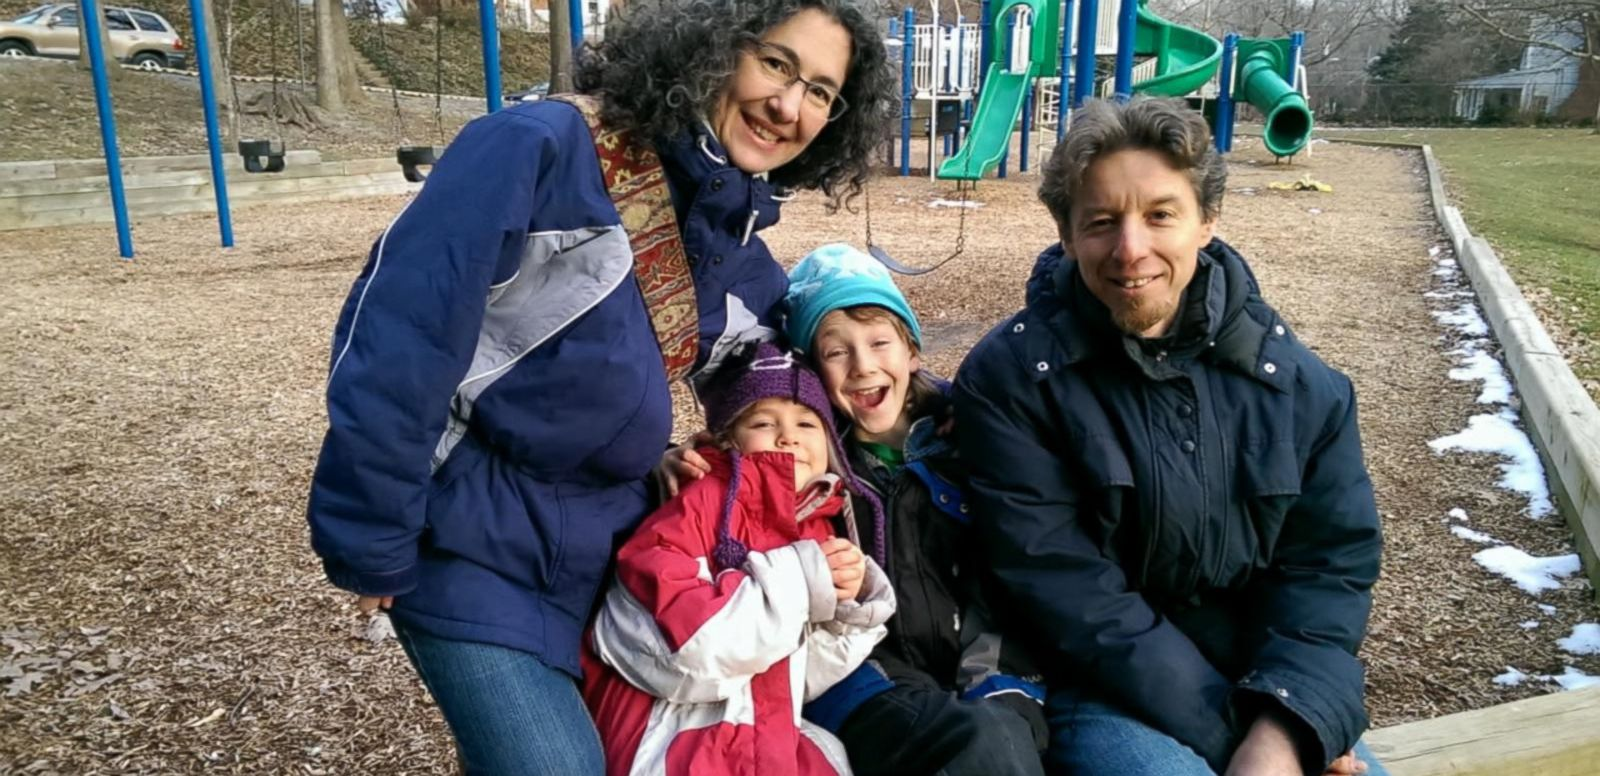 VIDEO: 'Free Range' Parents Cleared in 1 Case of Neglect